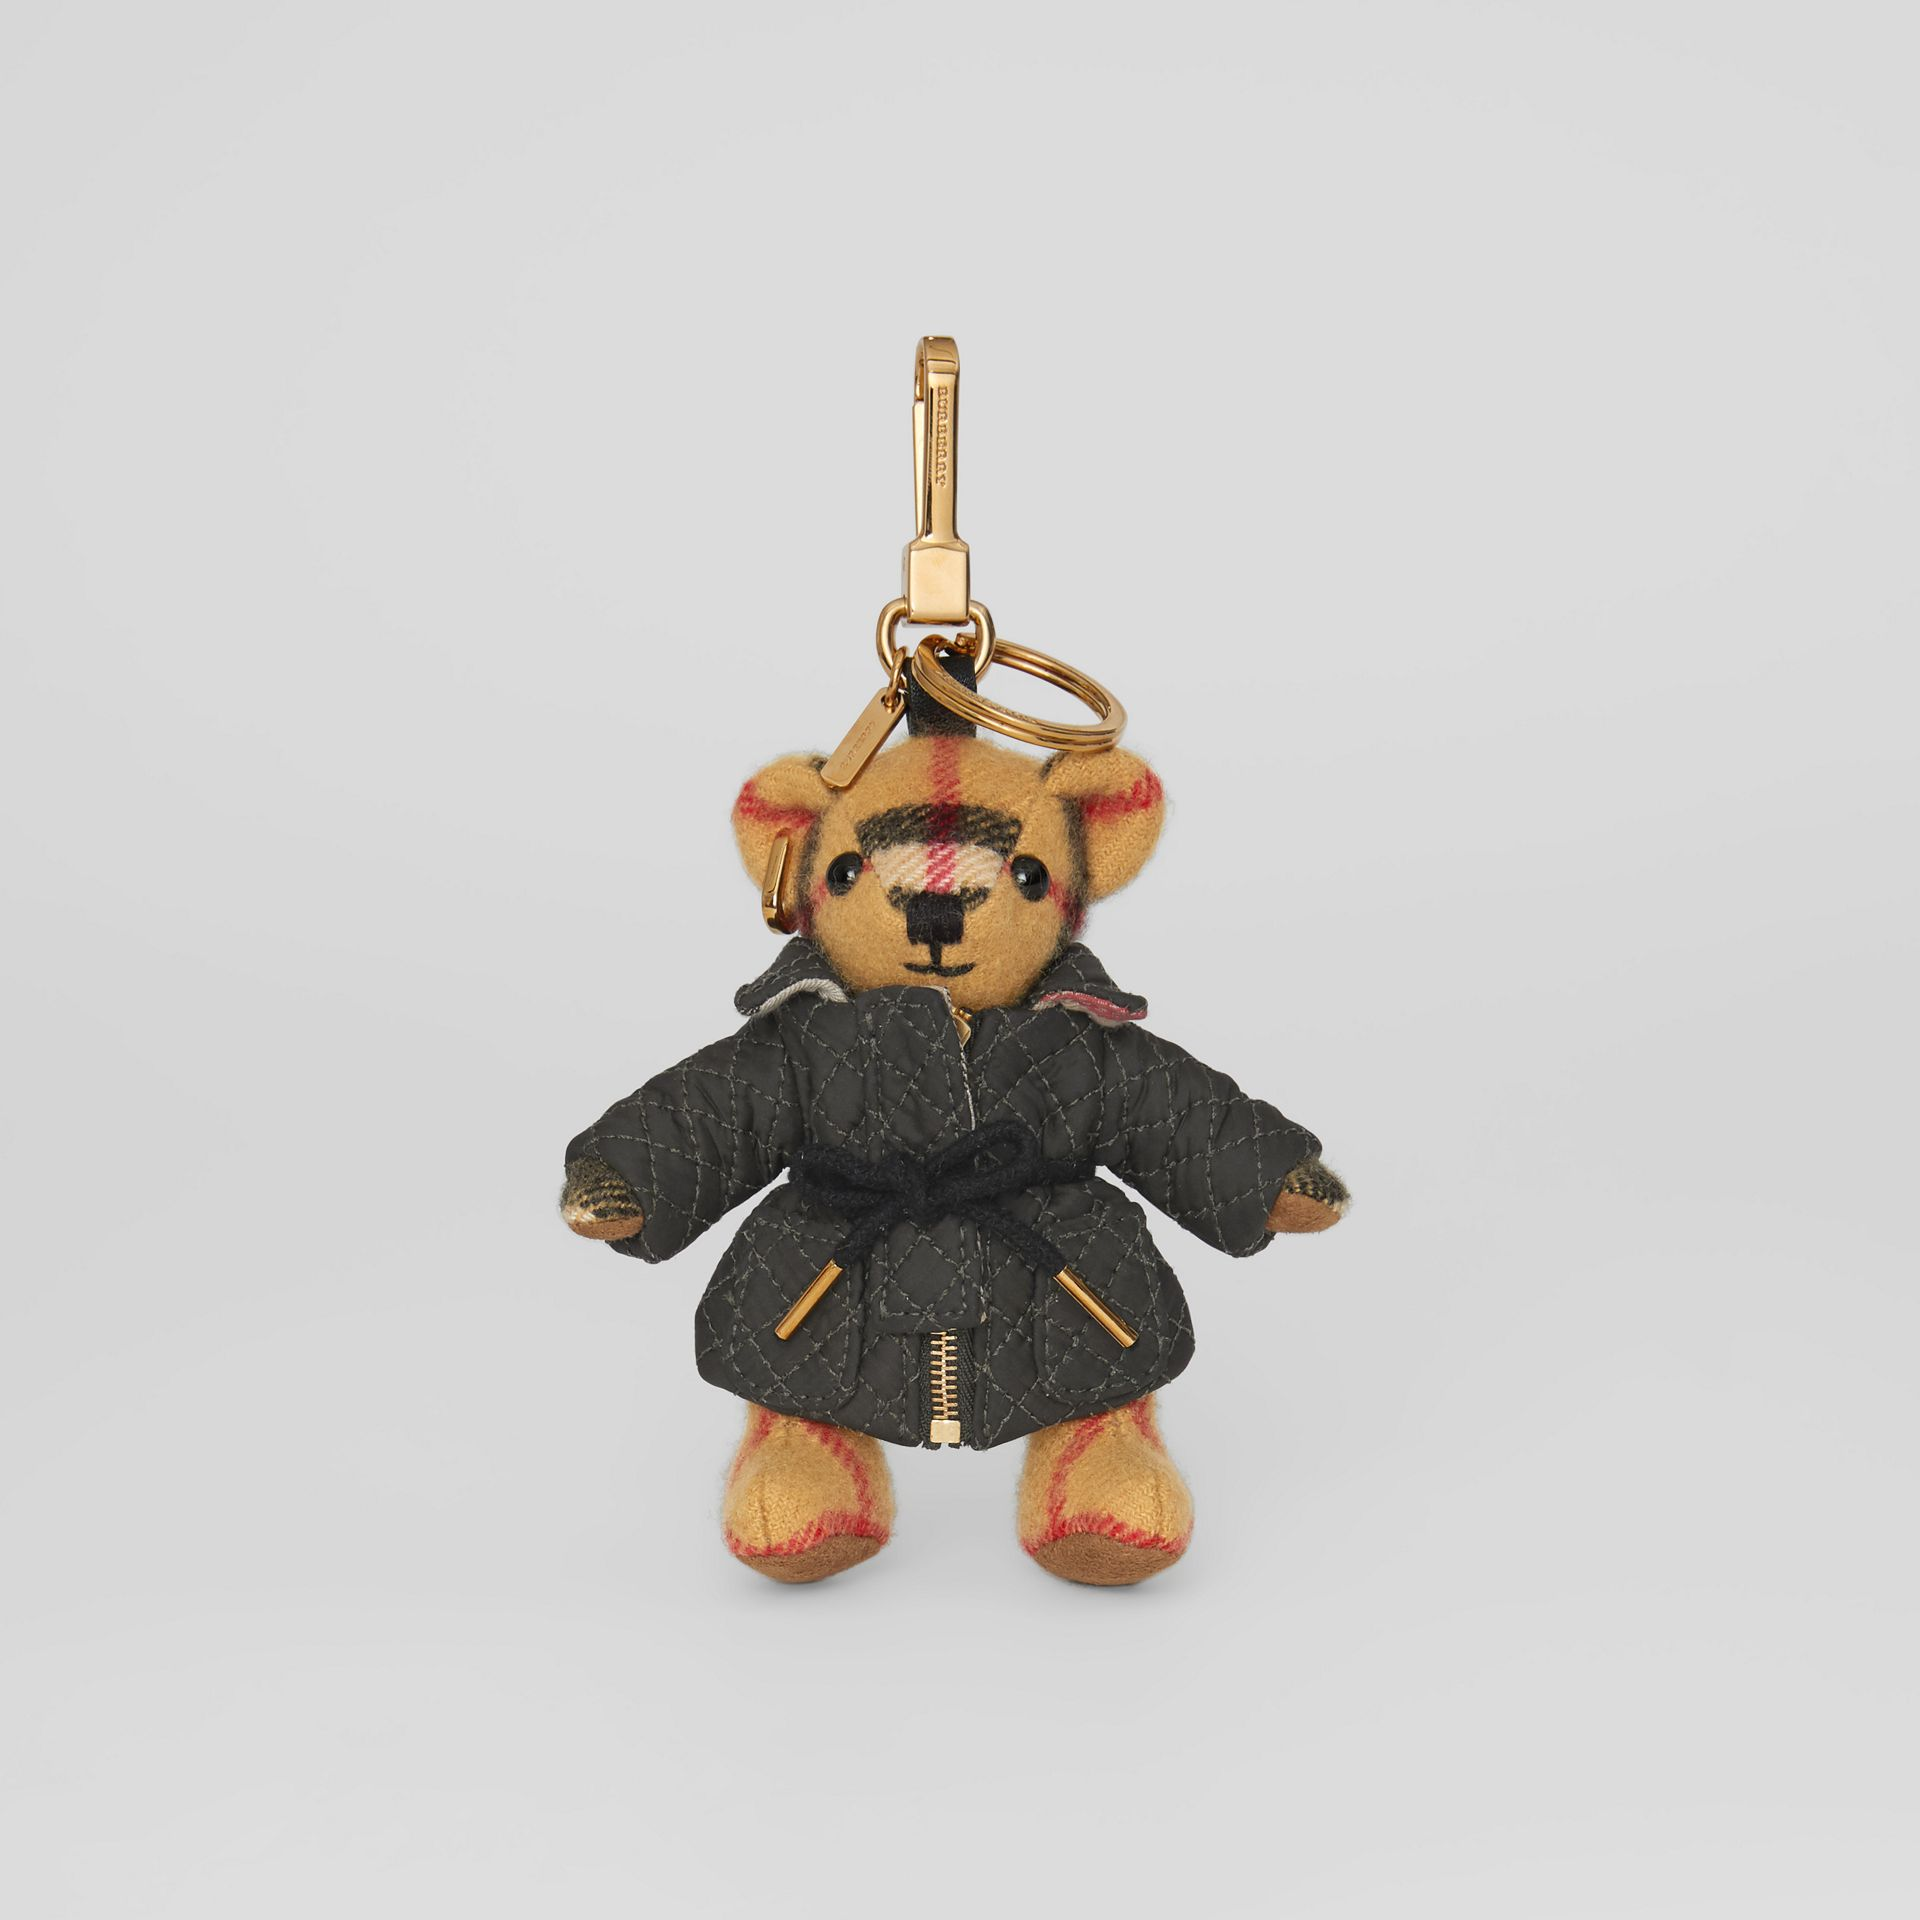 Bijou porte-clés Thomas Bear avec veste matelassée (Jaune Antique) | Burberry - photo de la galerie 2